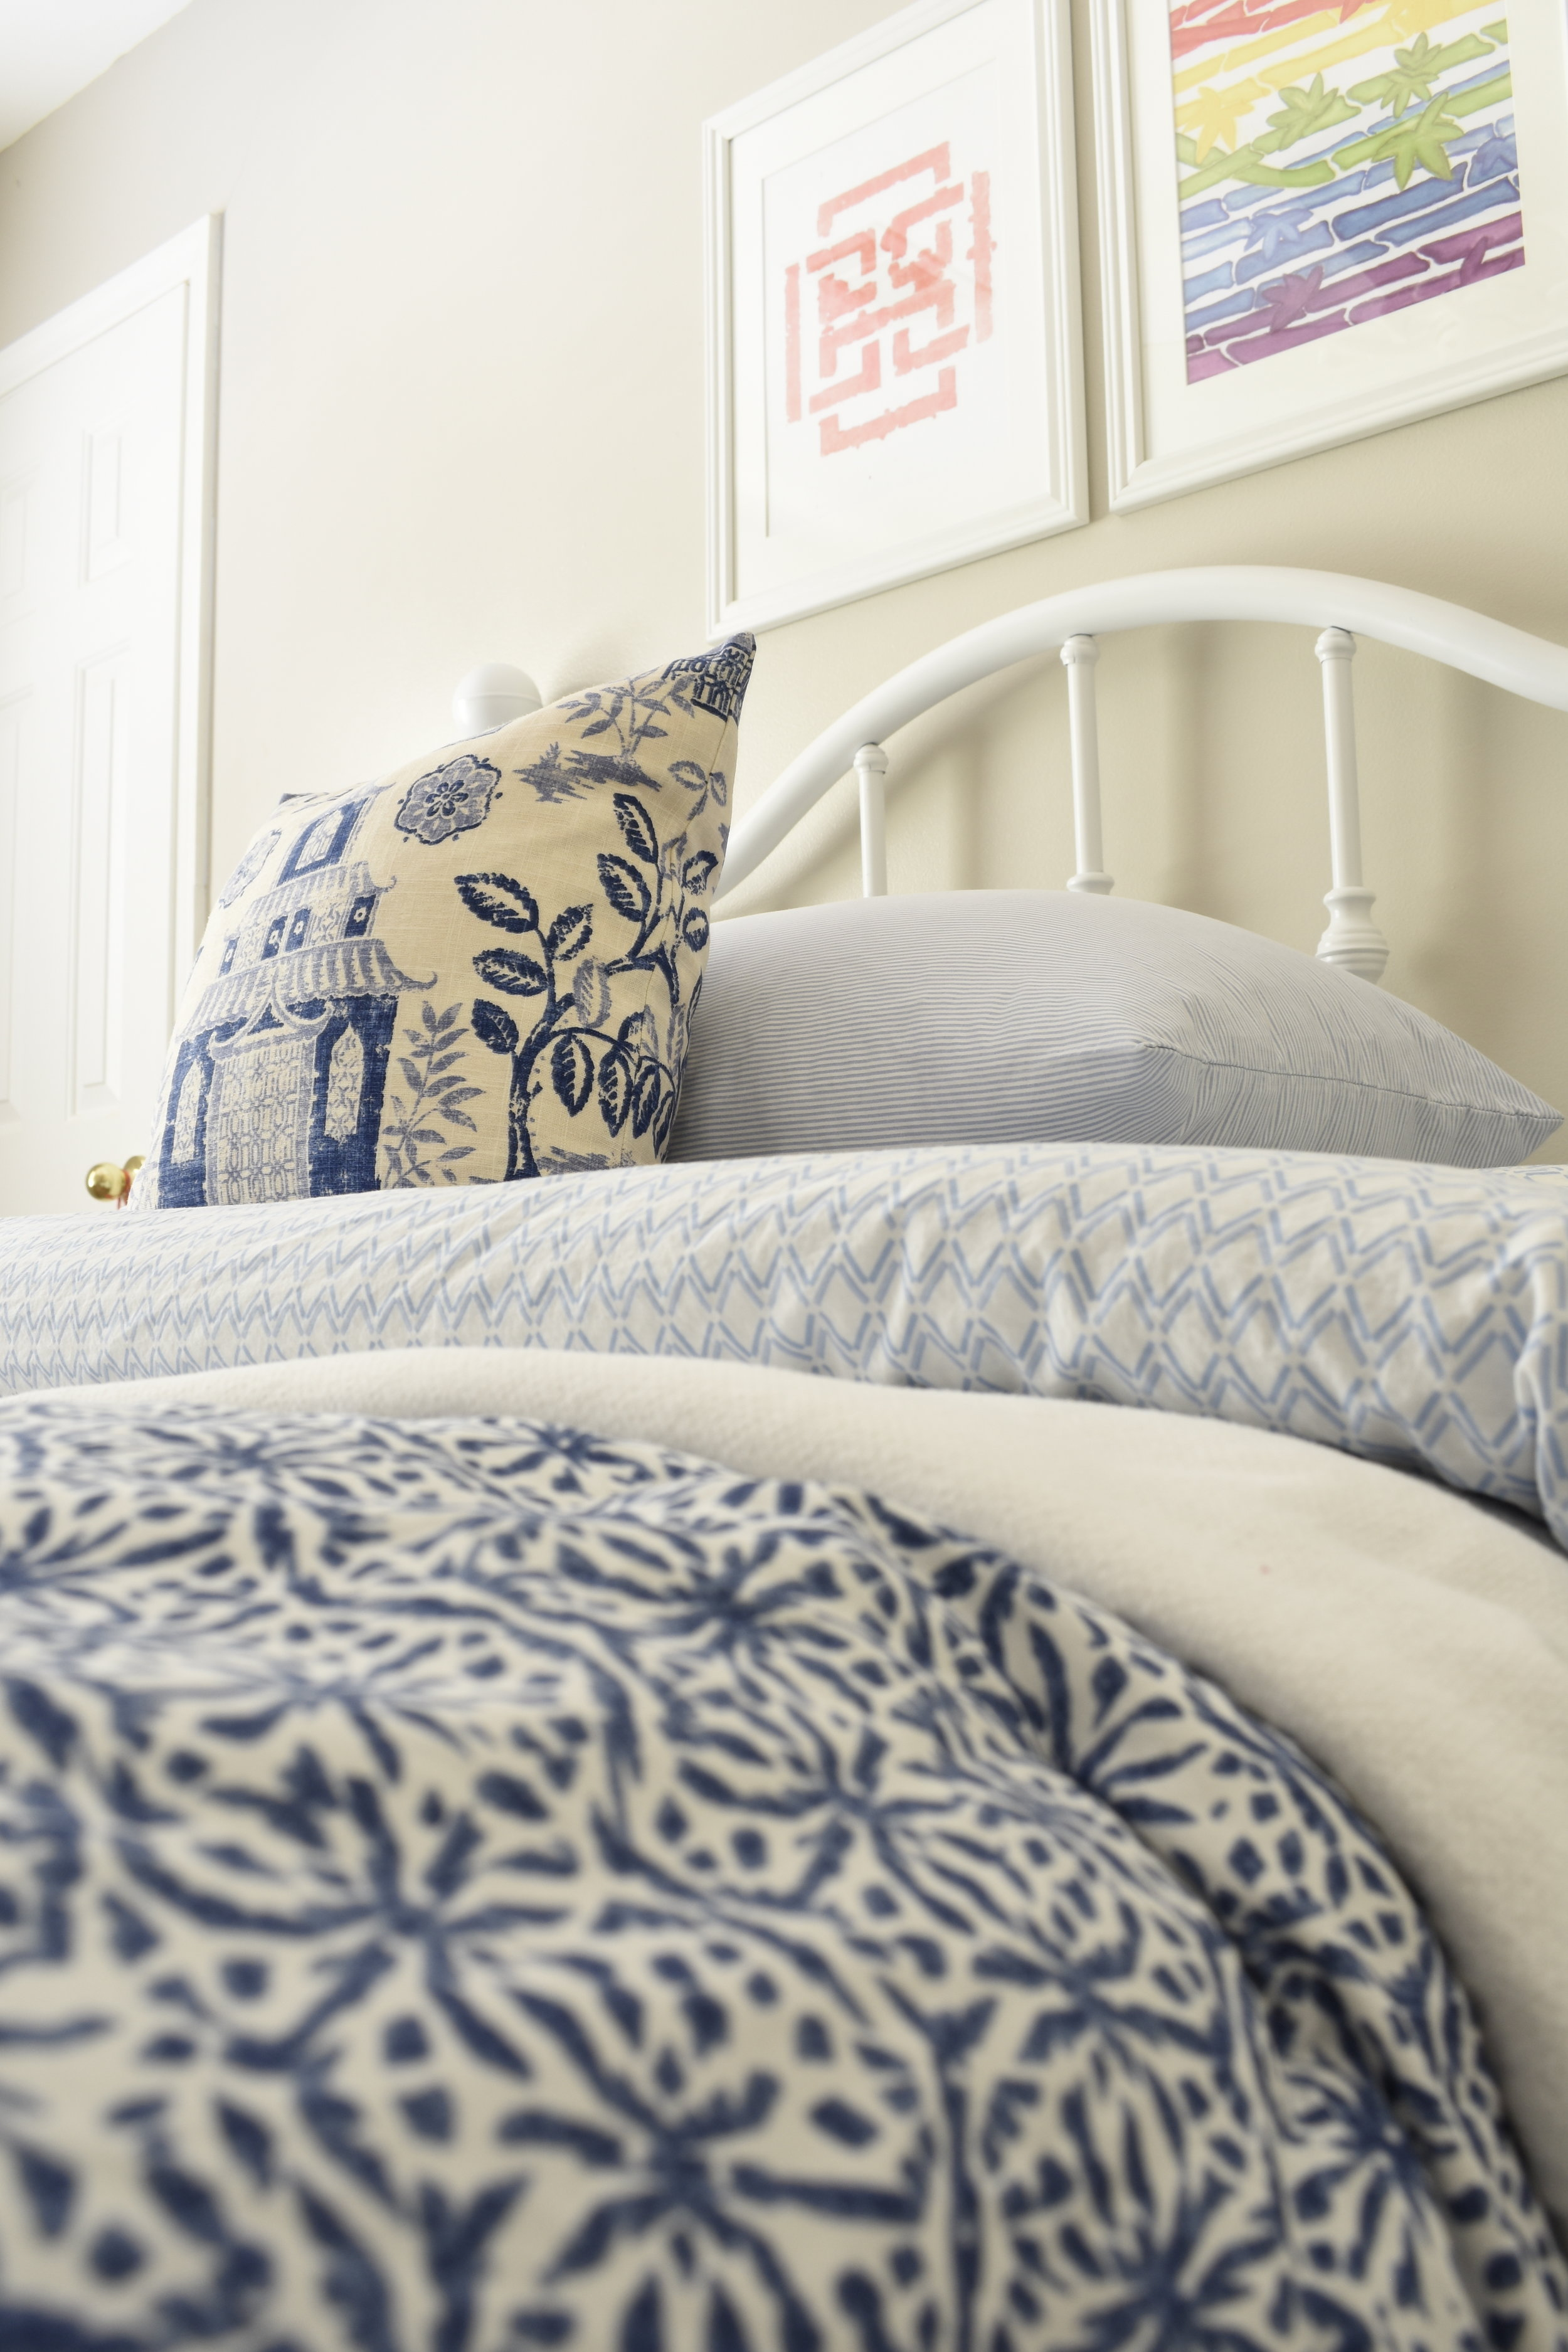 blue and white bedroom gets an update with colorful chinoiserie artwork